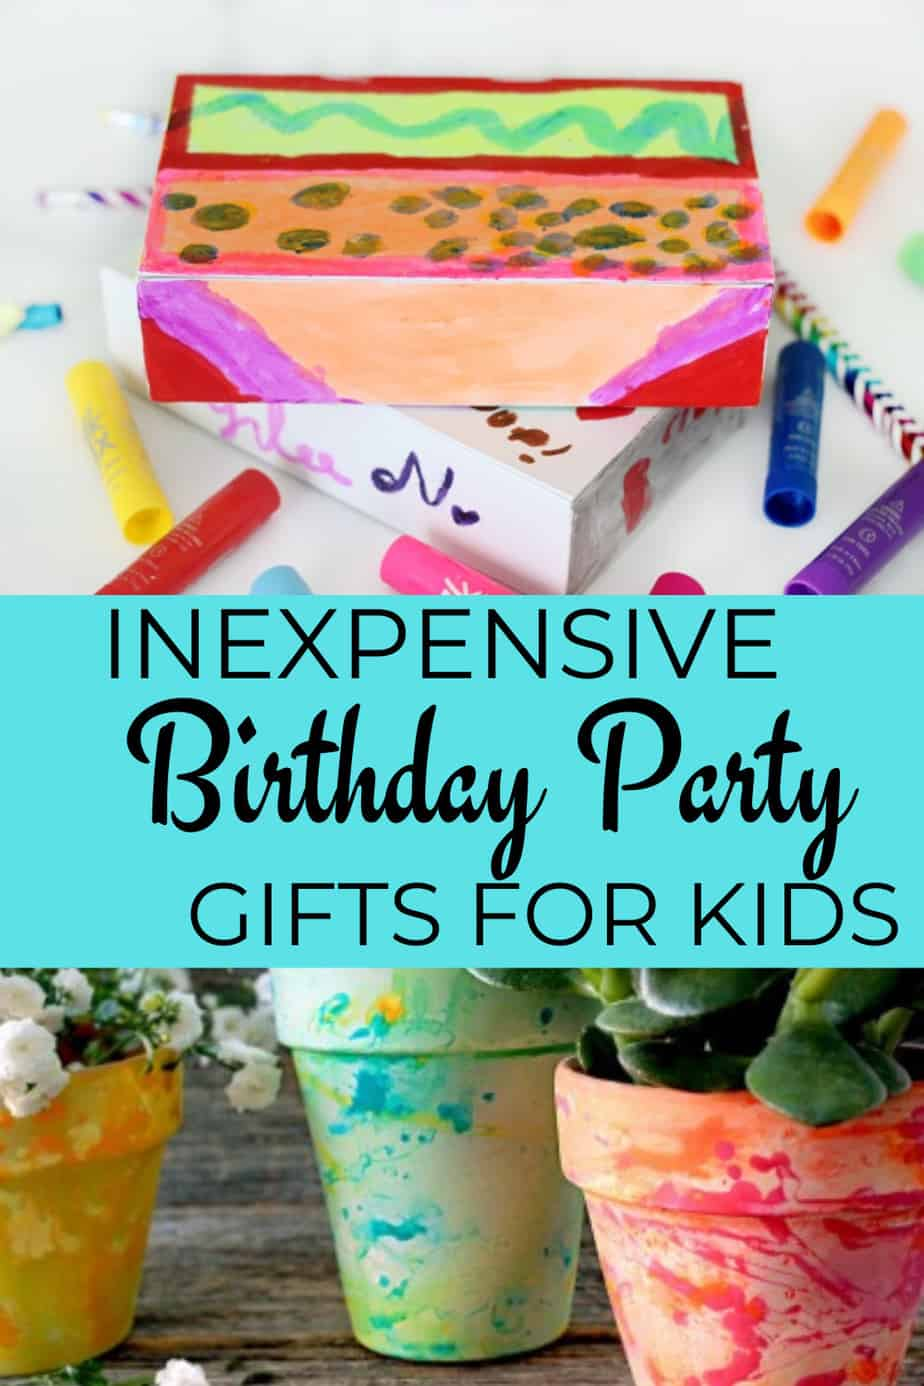 Inexpensive Birthday Party Gifts for Kids